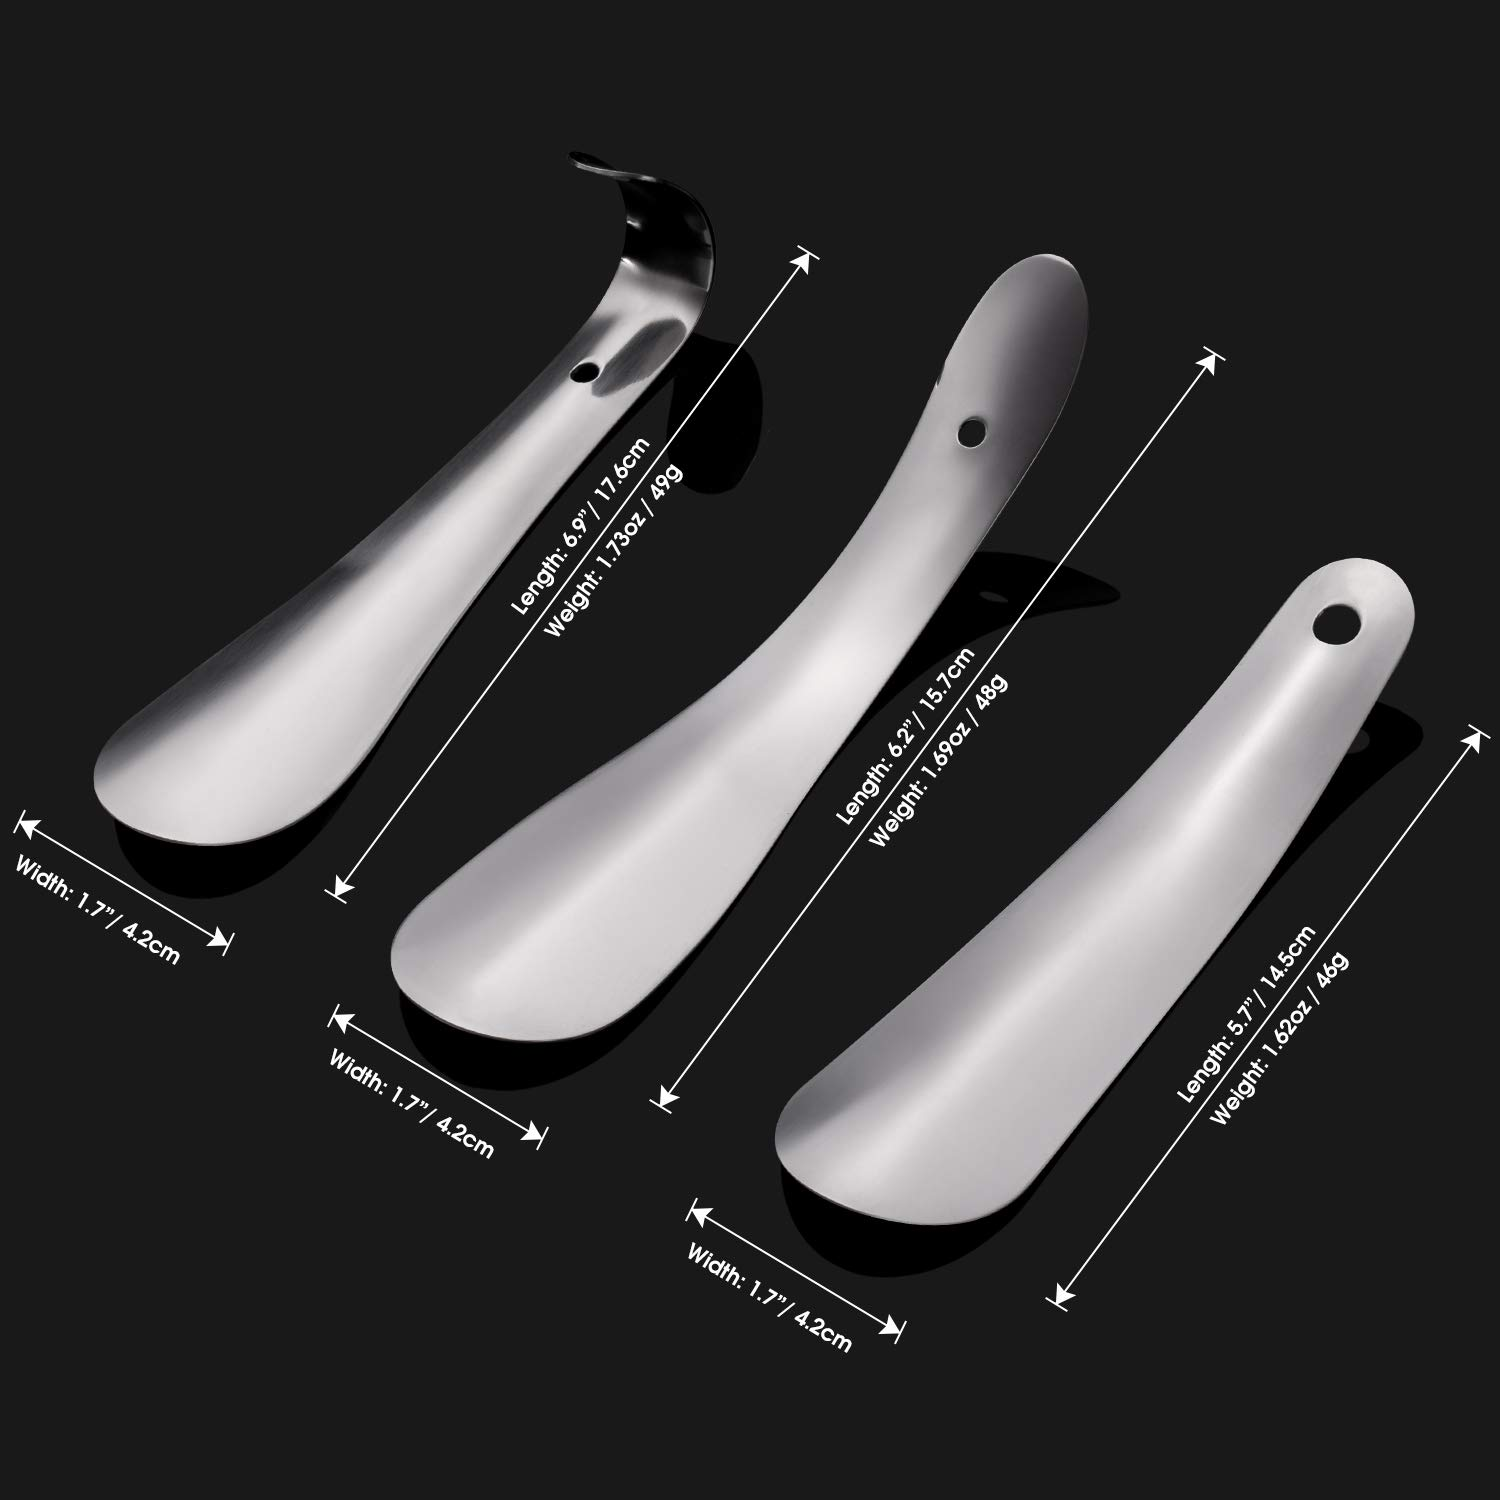 5.7//6//7inch Shoe Horn-Top Quality Metal Shoe Helper Travel Shoehorn pack of 3